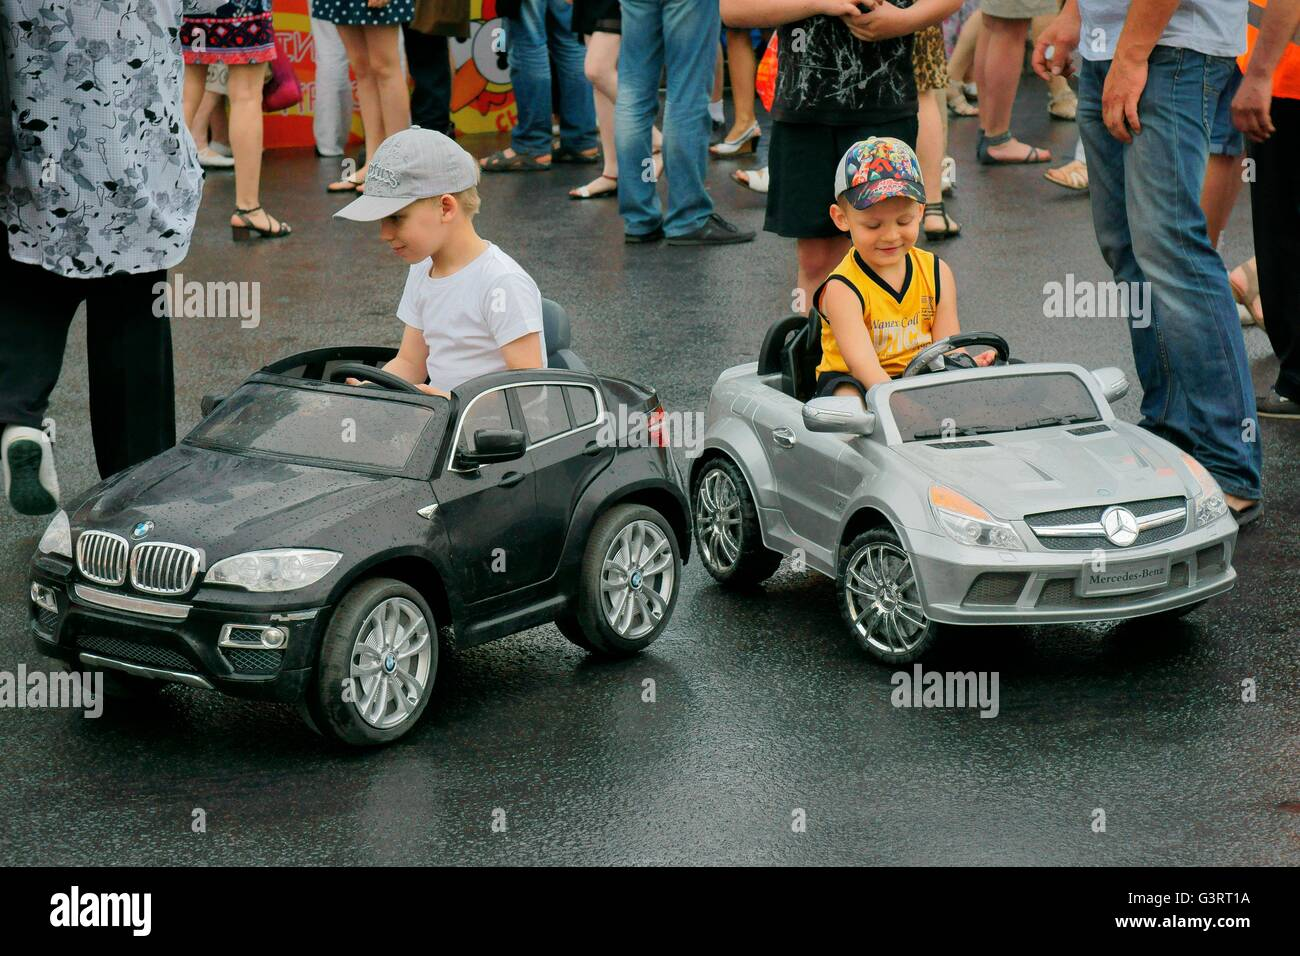 Saint Petersburg, Russia. Boys test drive German import cars on Ostrovsky Square during annual St. Petersburg City - Stock Image